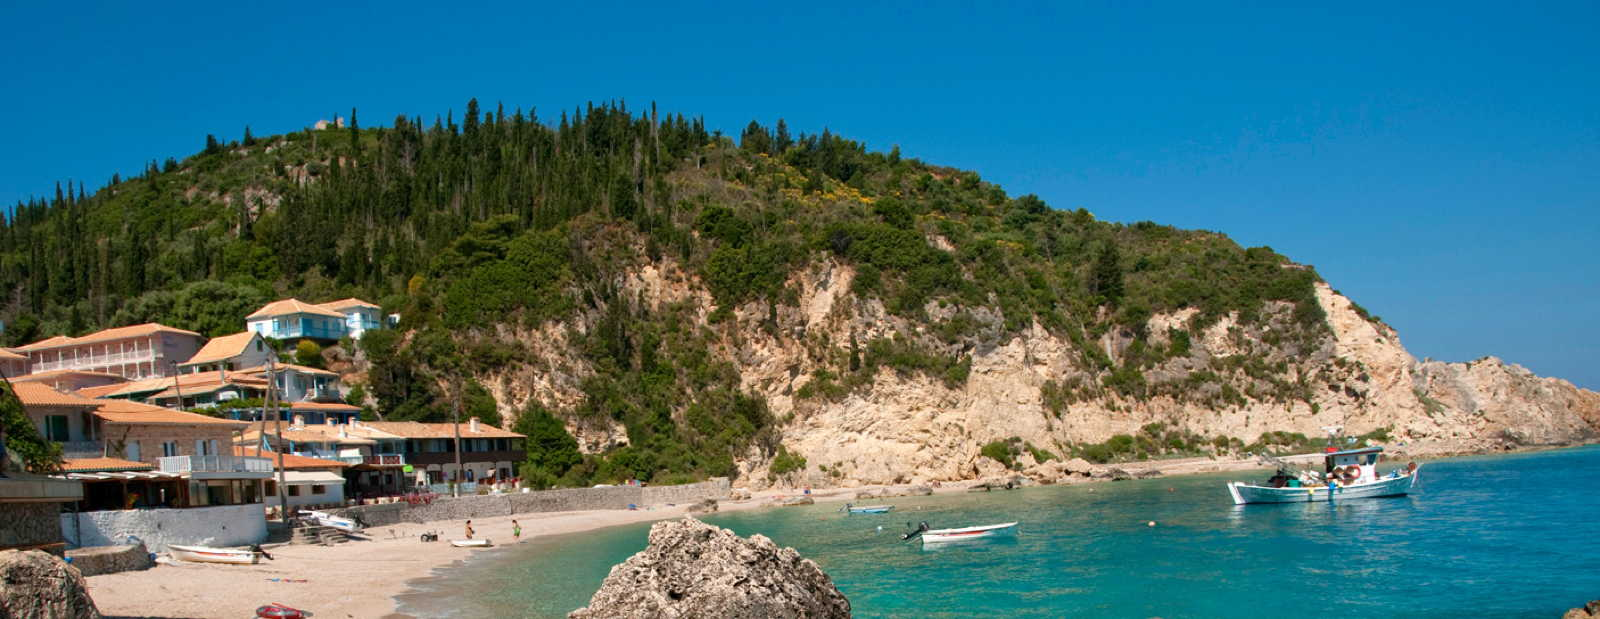 Exclusive holiday homes in the Ionian Islands